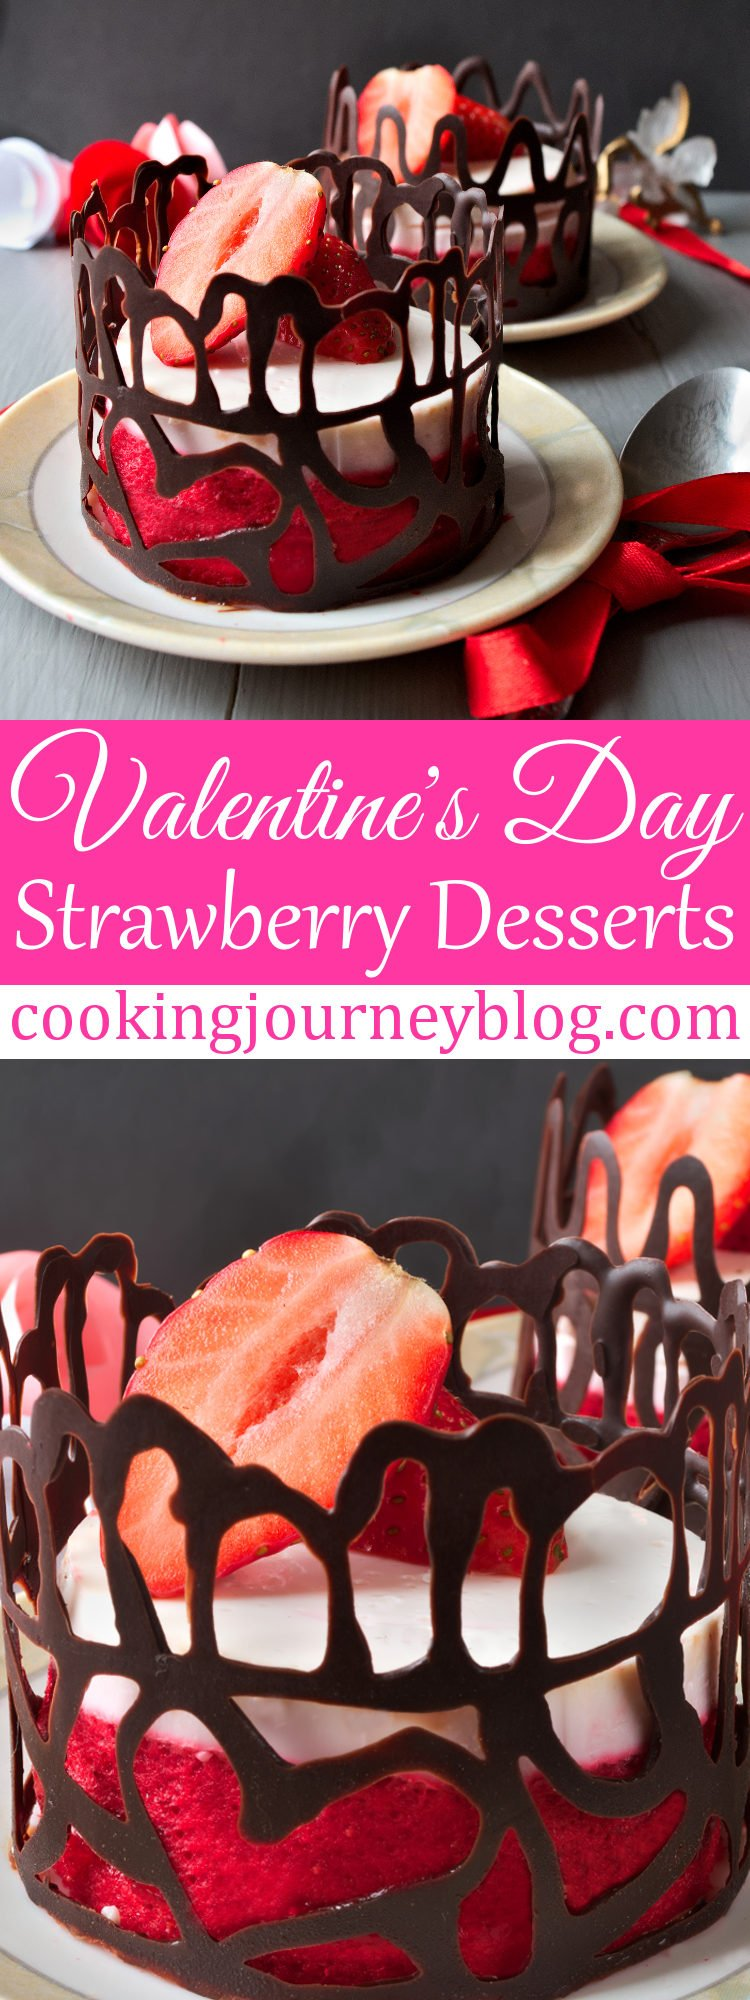 Strawberry Desserts Healthy Desserts Valentines Day Cooking Journey Blog